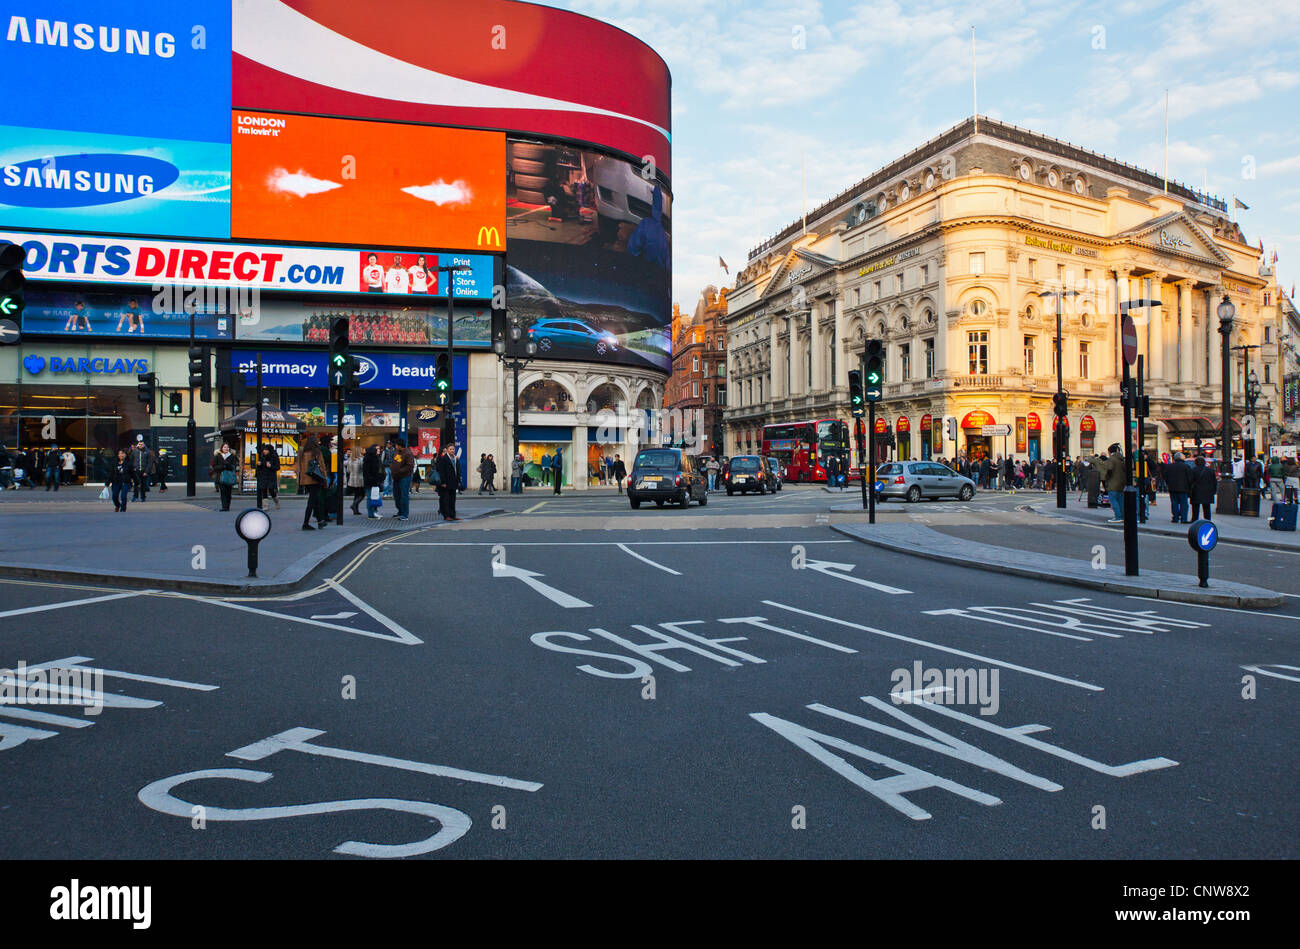 Europe England London, people in Piccadilly Circus - Stock Image